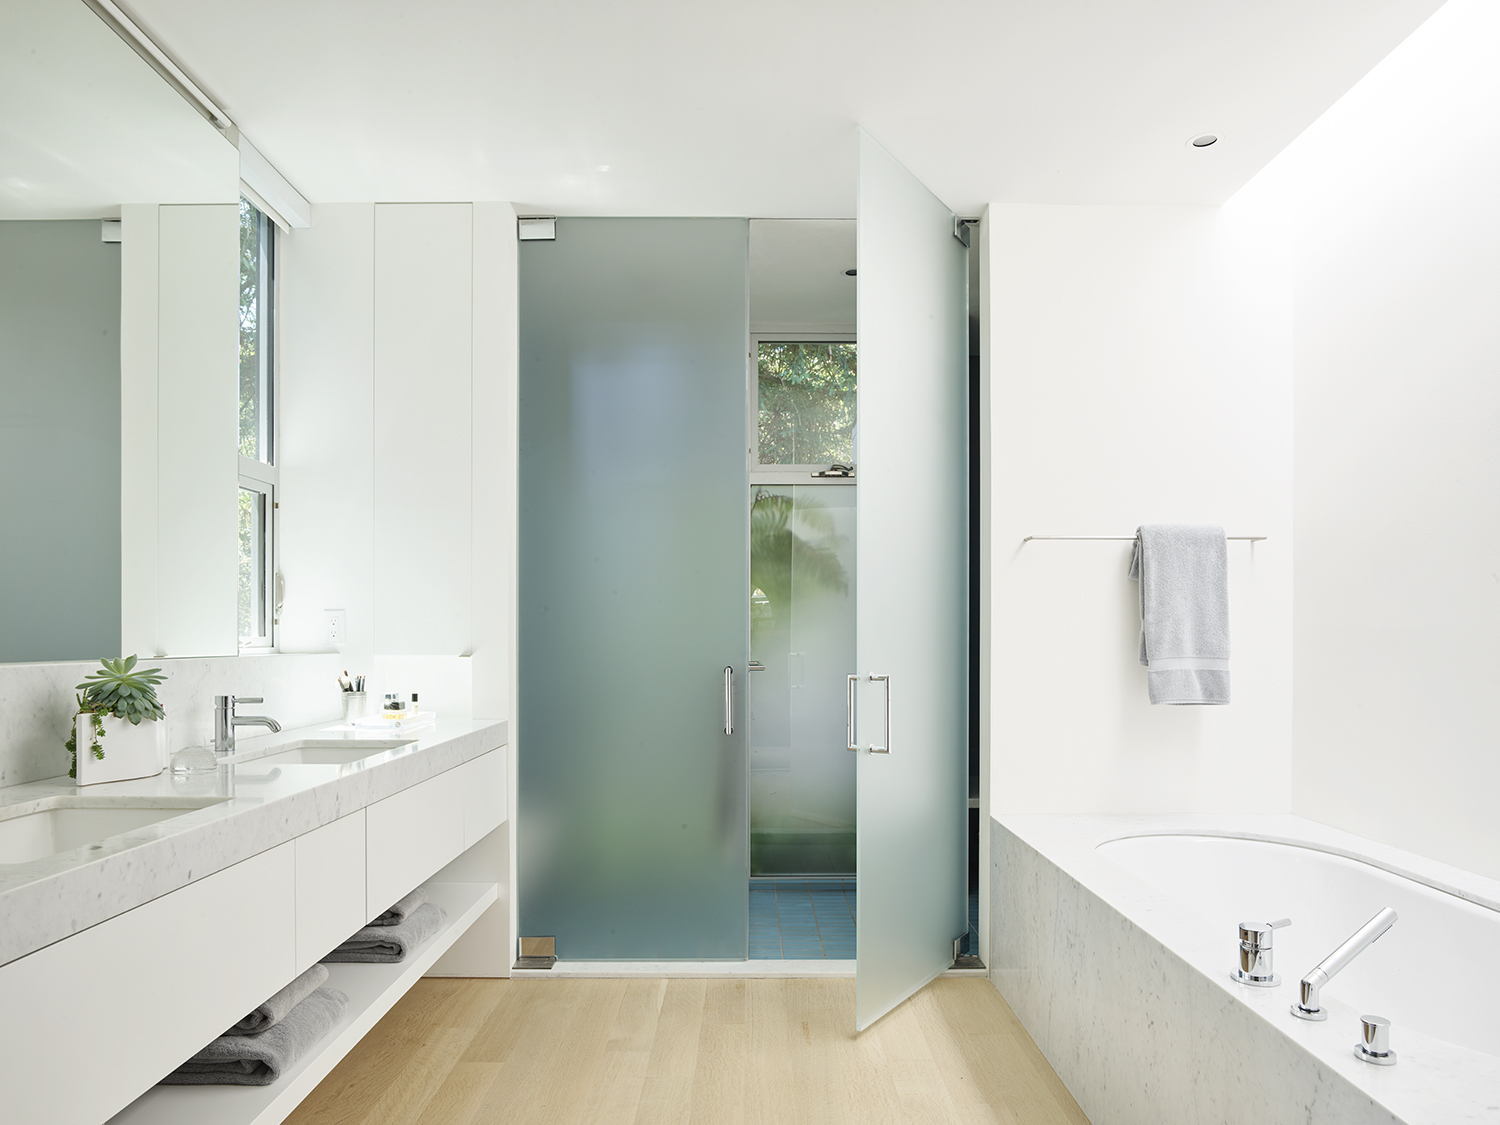 Herspring House renovated in Kentfield California, inside view of bathroom with bathtub, shower, sink and mirrors